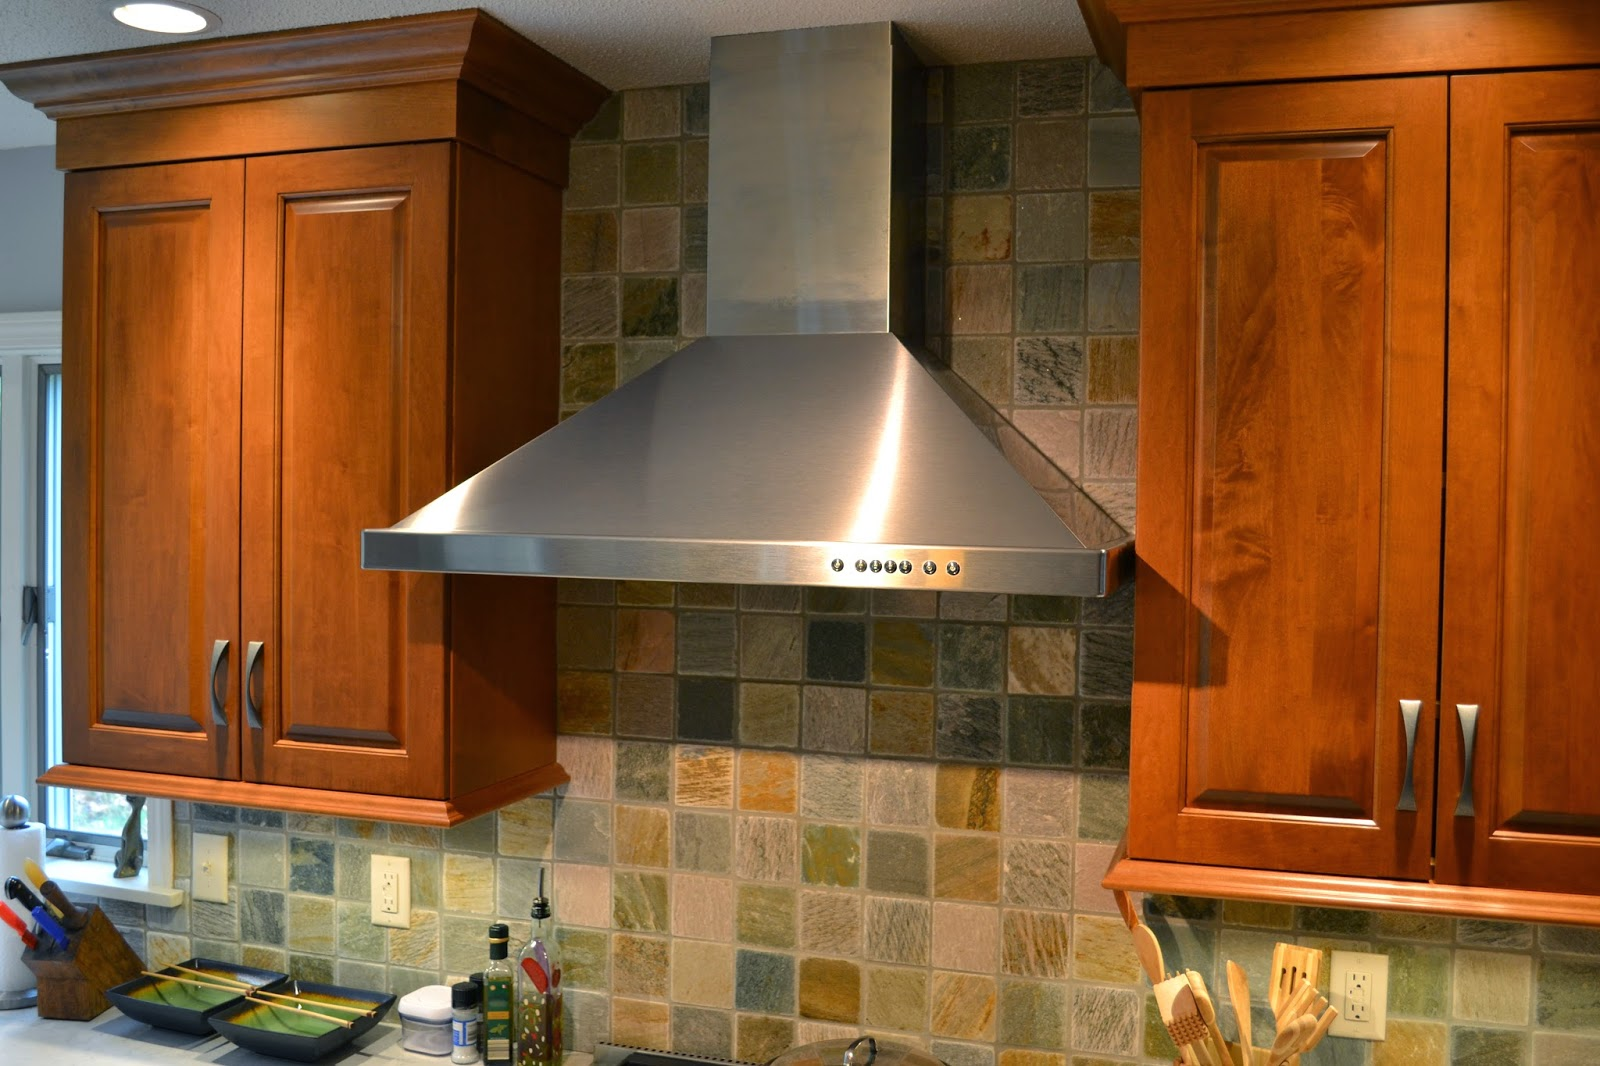 this concludes our post on countertops and backsplash if you have any